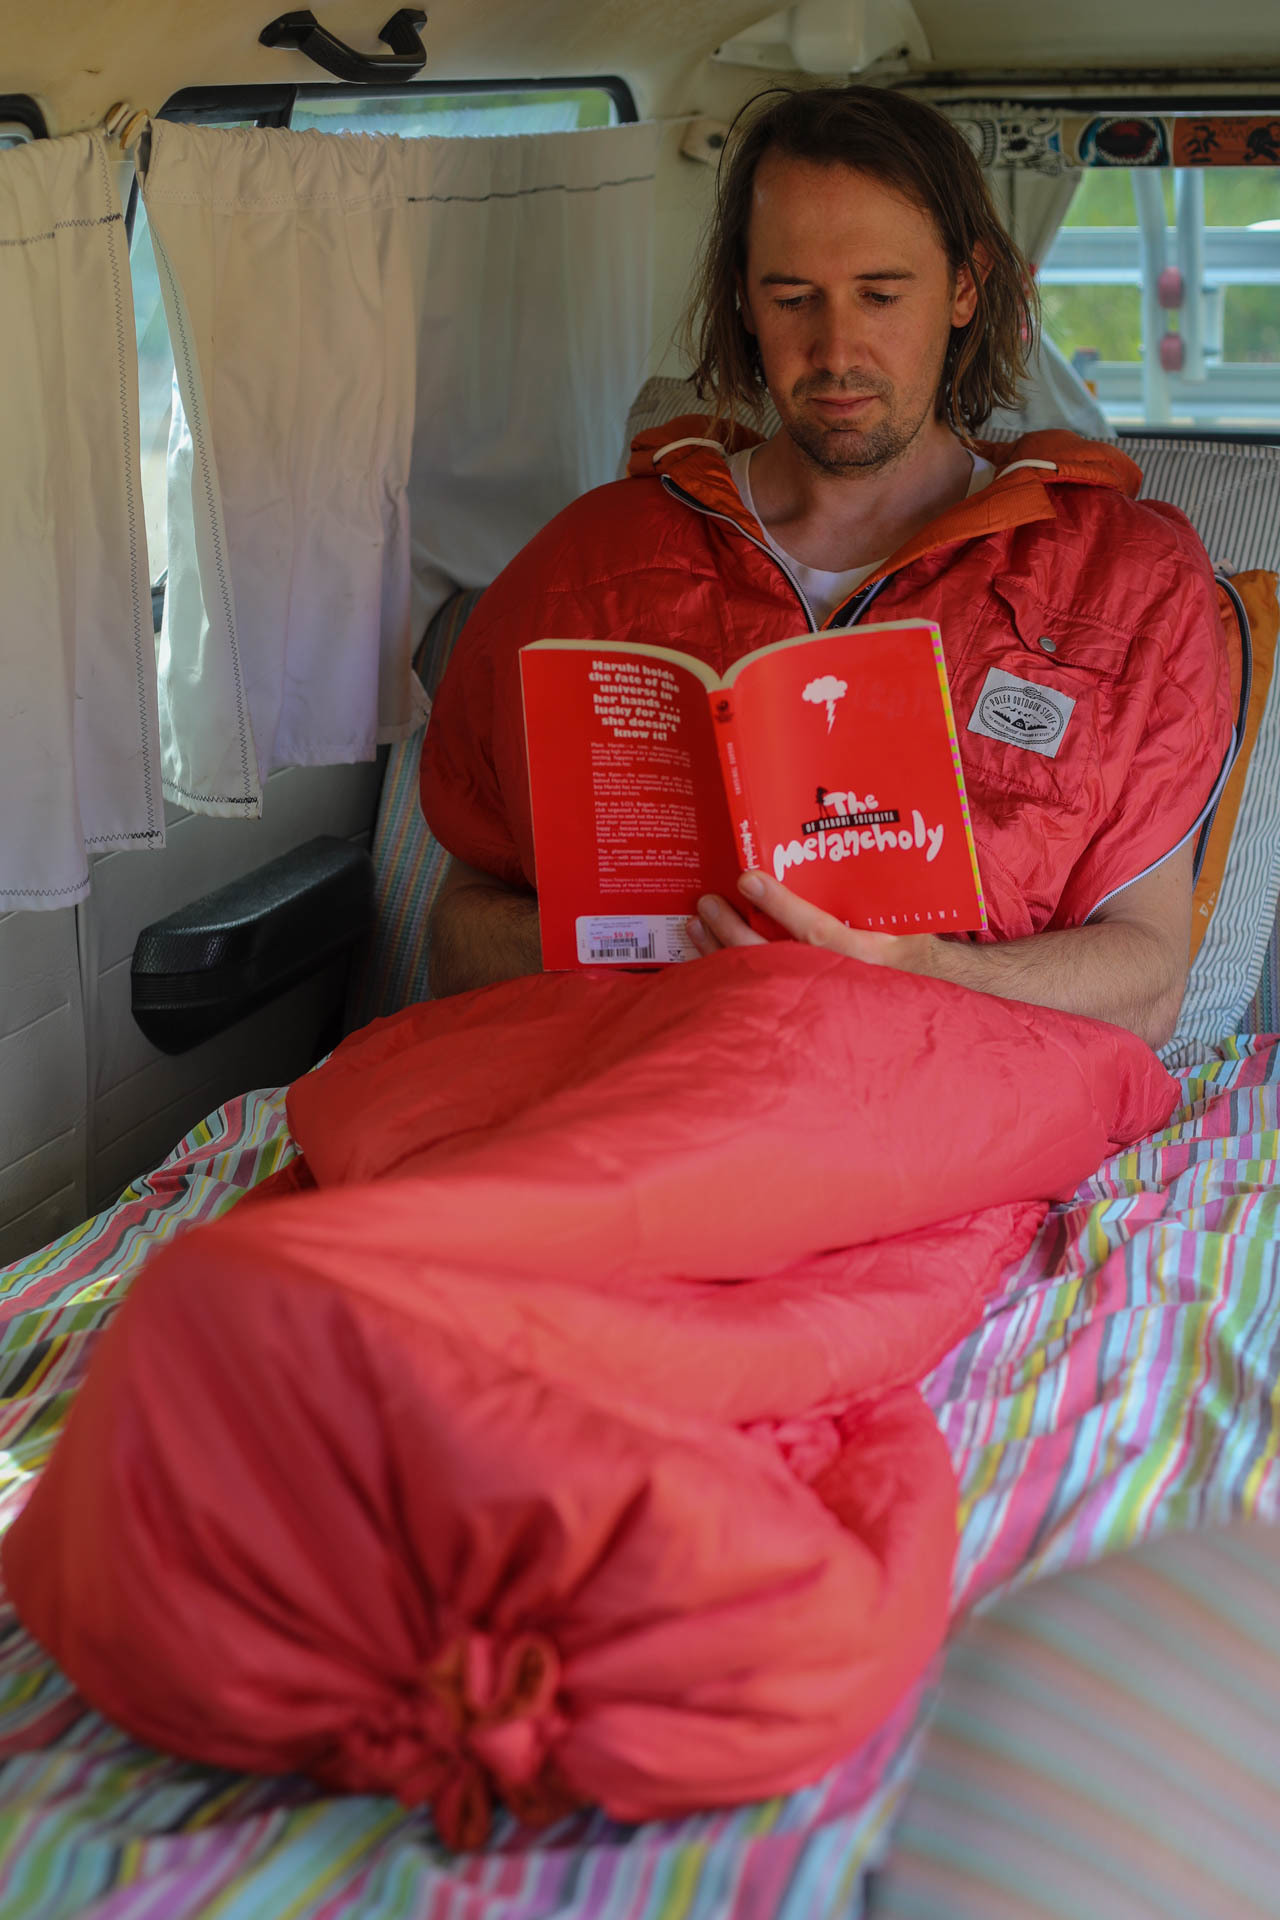 The Reversible Napsack by Poler // Gear Review, mattie gould, sleeping bag, jacket, who knows,